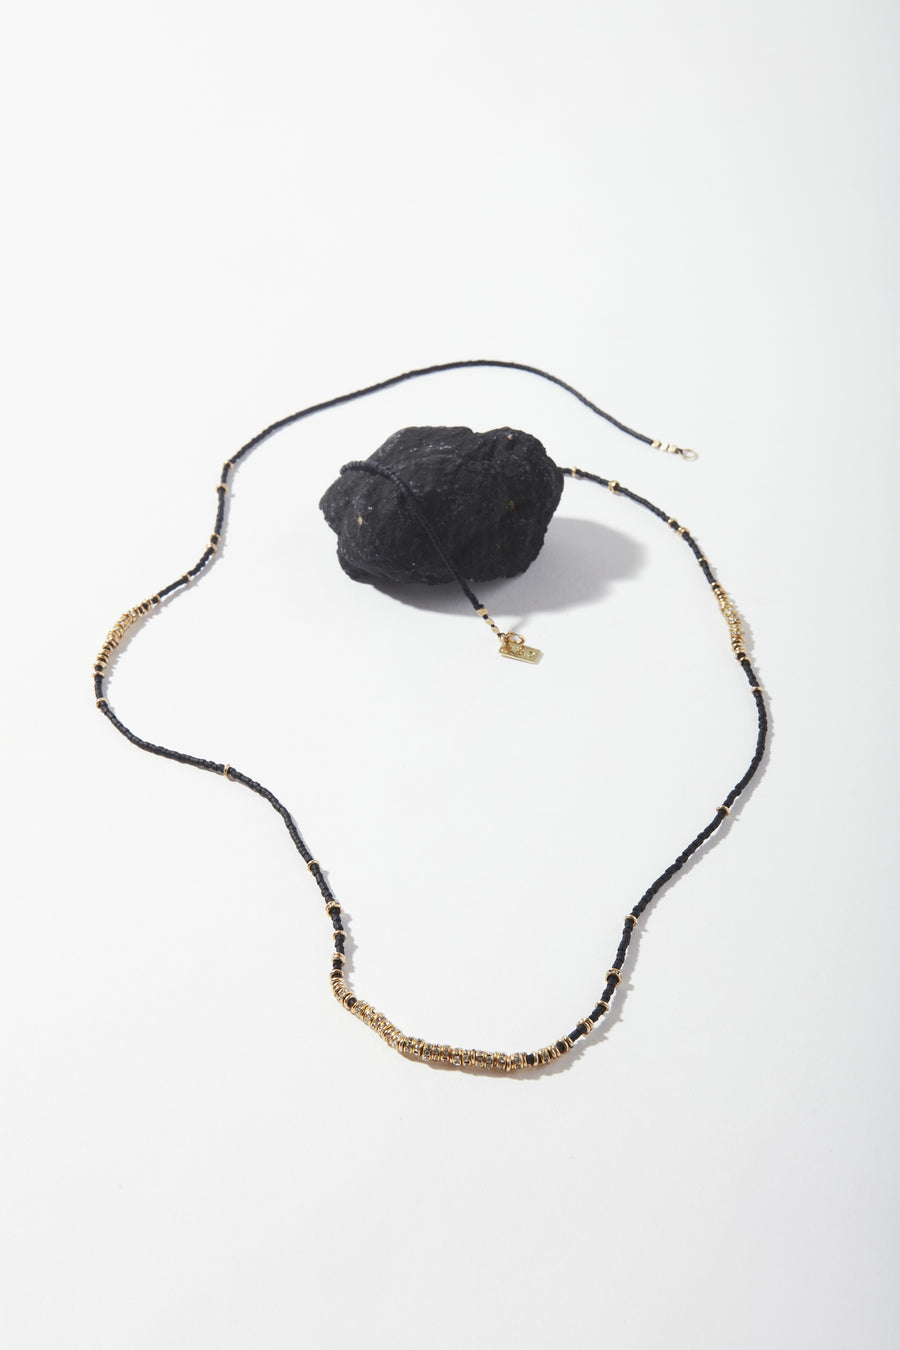 Lune Noir Crystals Long Full Necklace